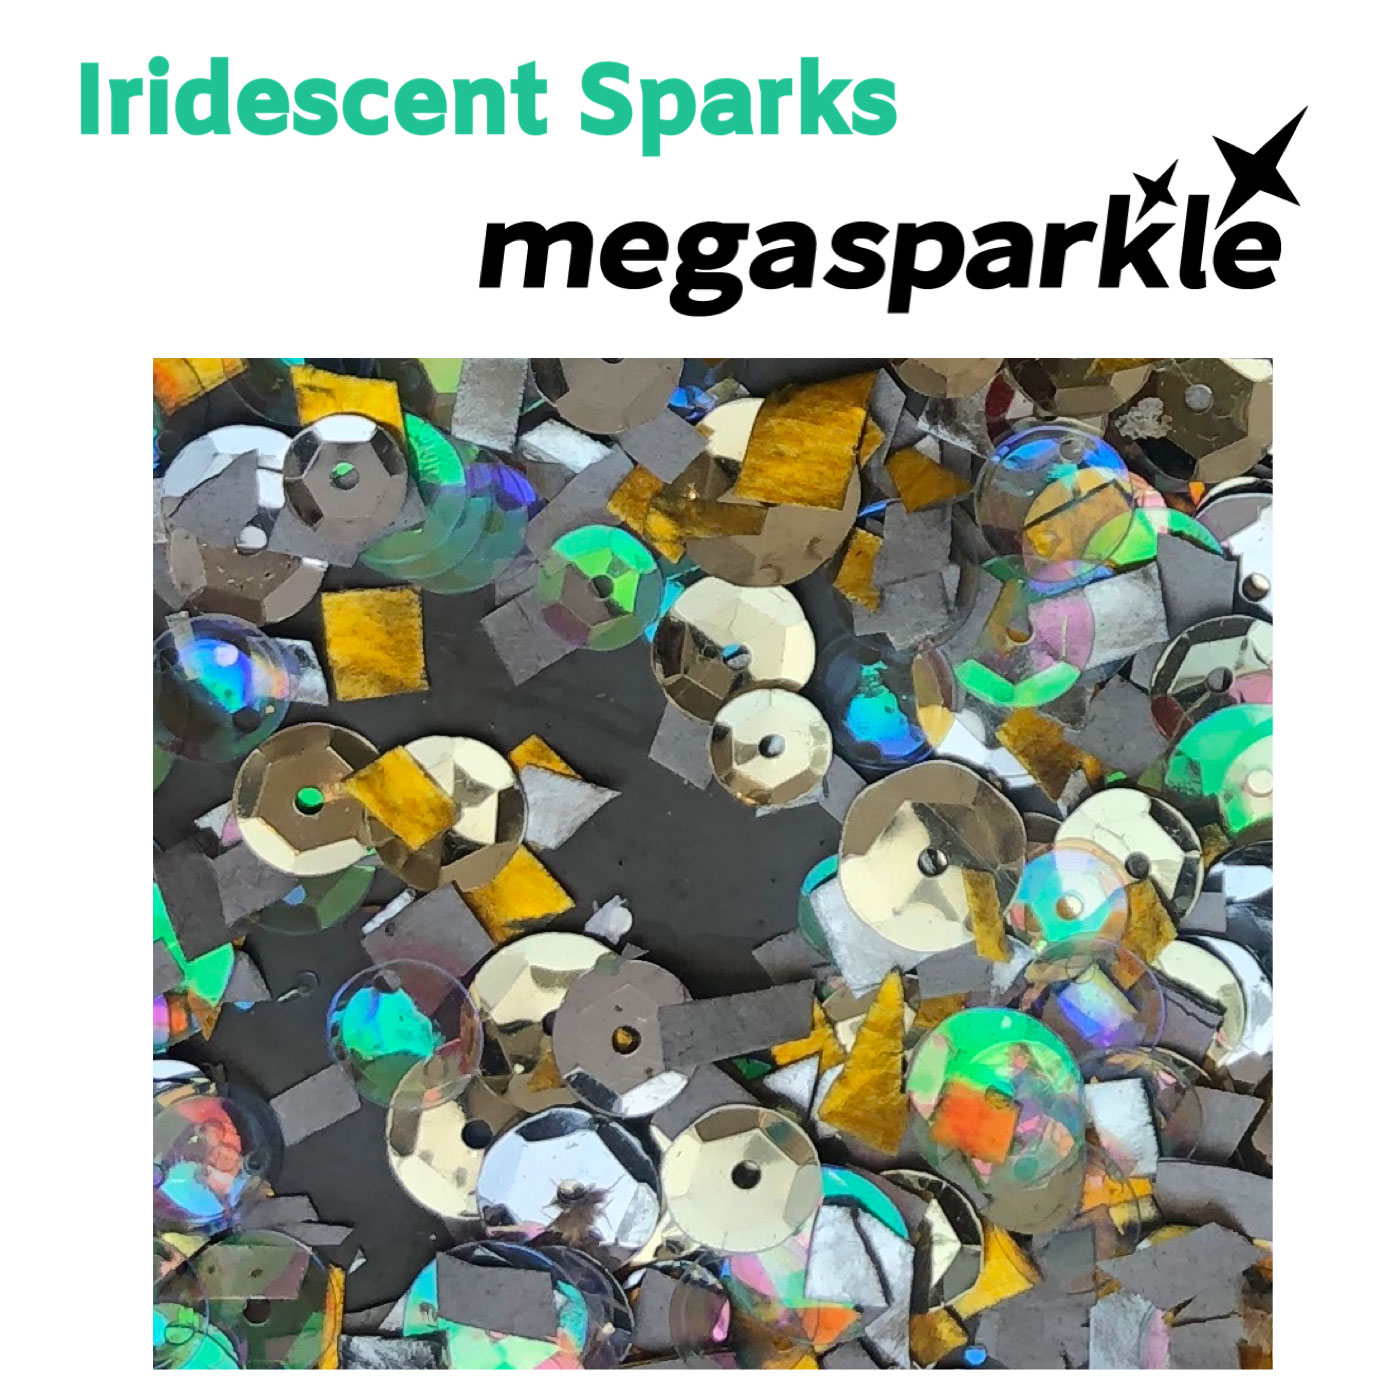 Iridescent Sparks